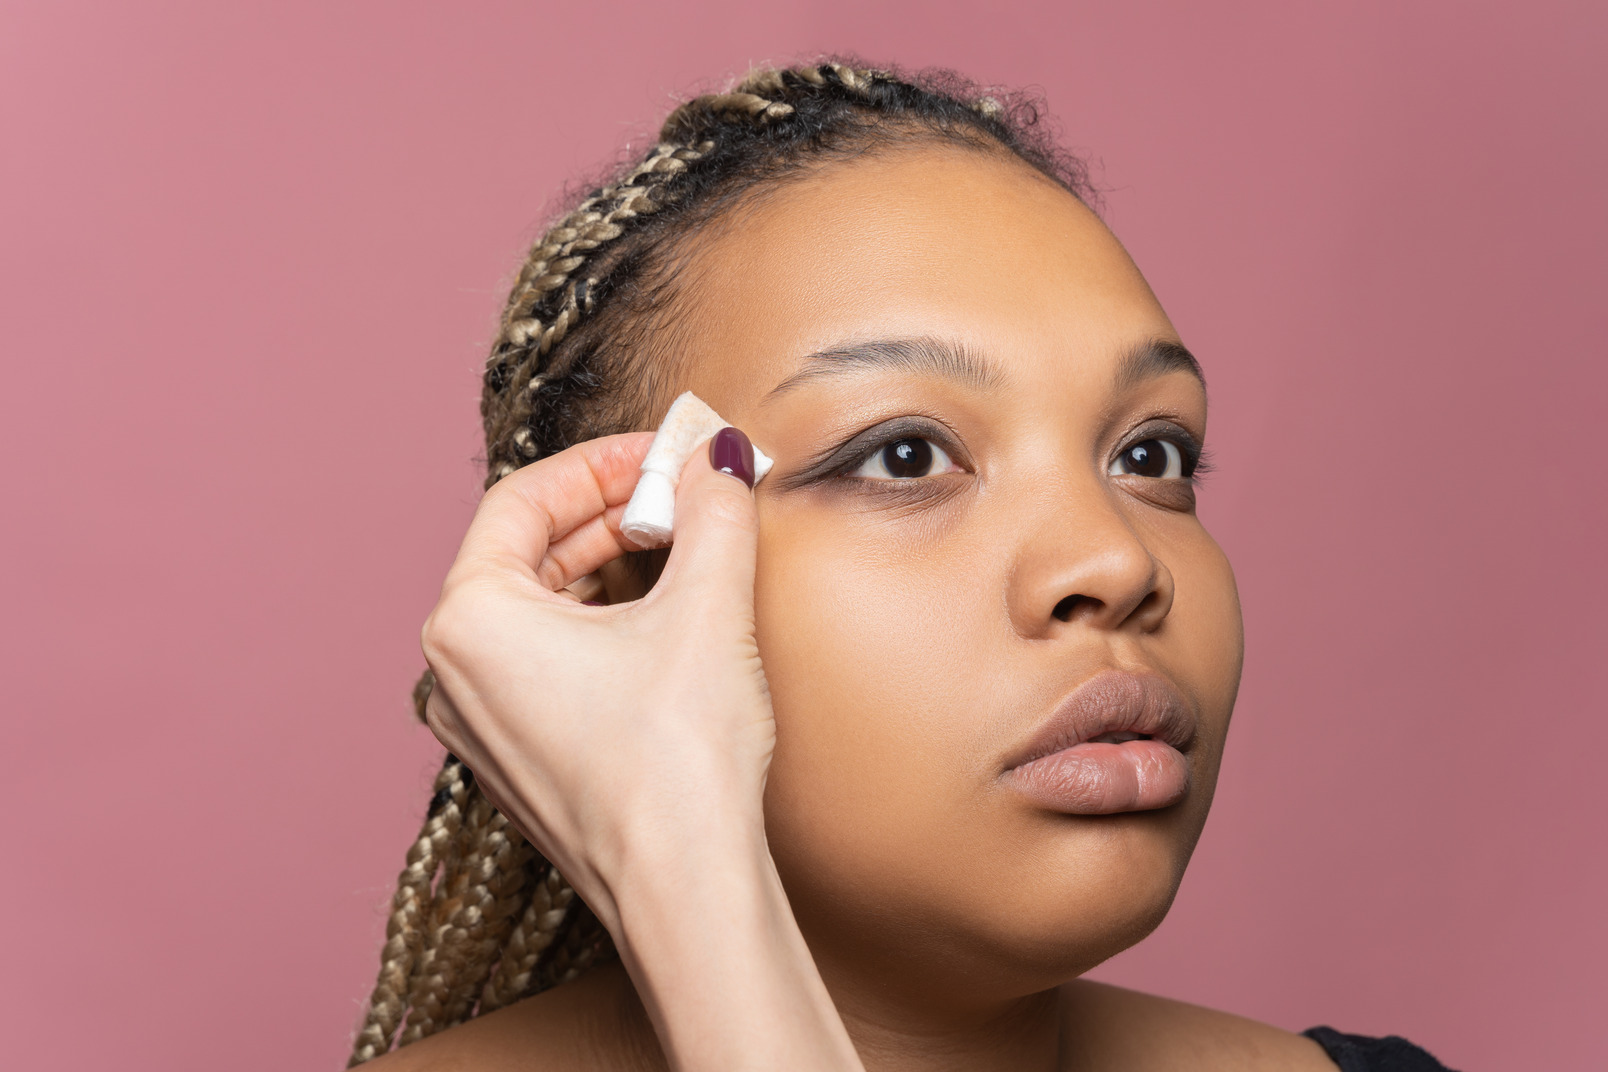 Removing excessive eye shadow